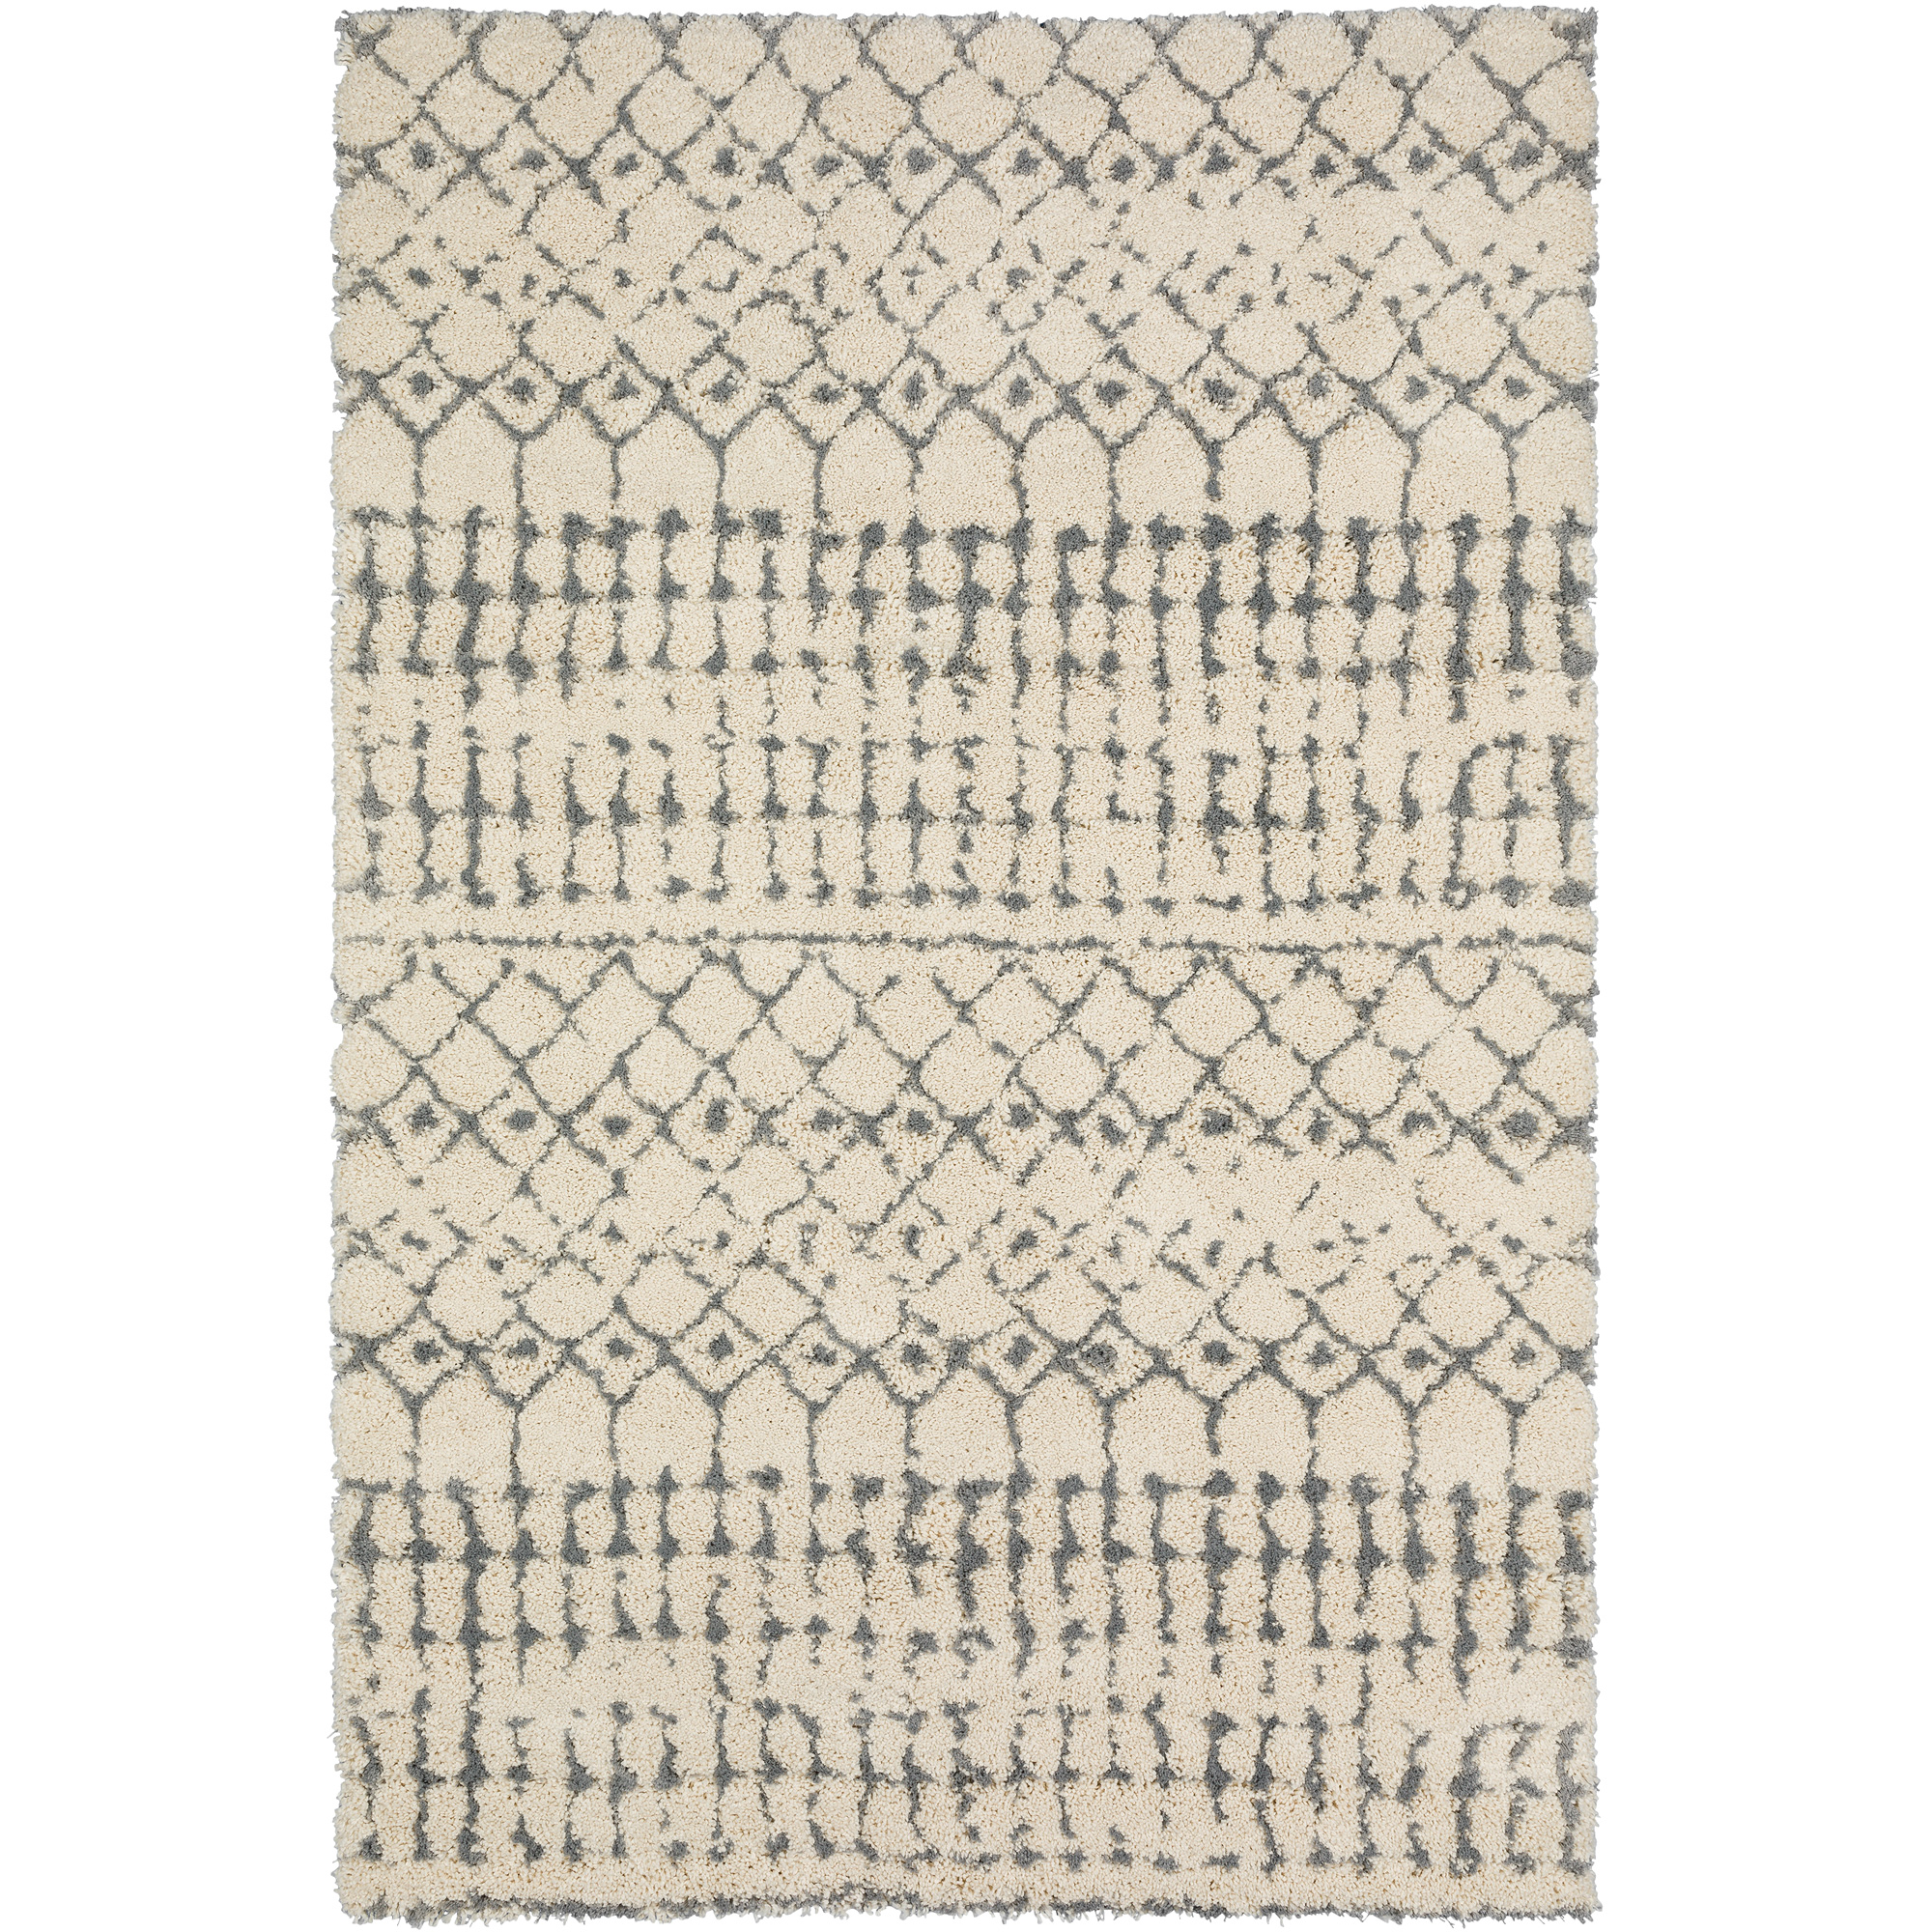 Dalyn Rug Company | Marquee Ivory And Metal 5x8 Area Rug